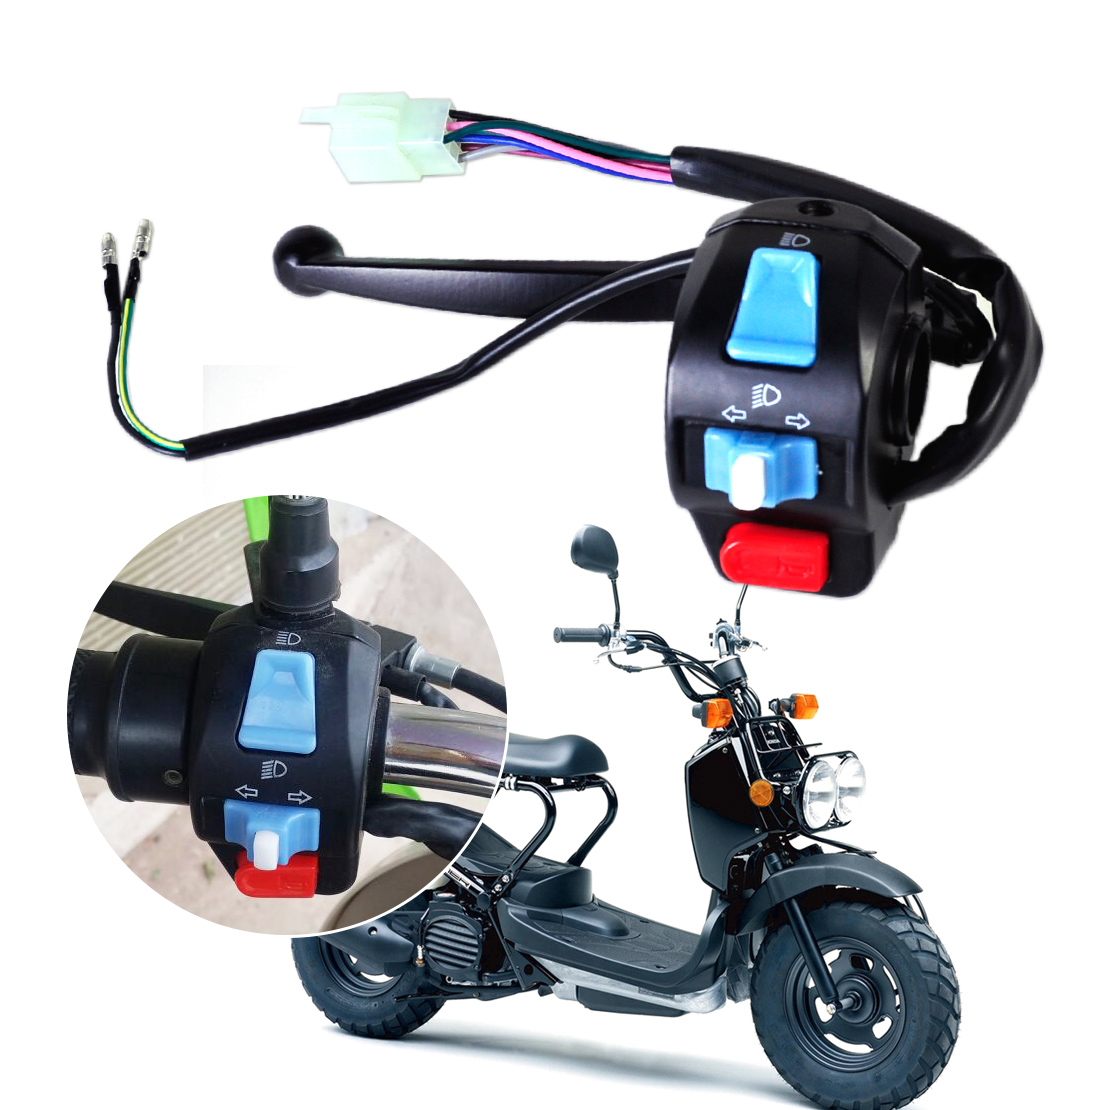 DWCX Motorcycle Left 7/8 Horn Turn Signal Low High Beam Handlebar Lever Controller Switch for Harley BMW Honda Suzuki Scooter